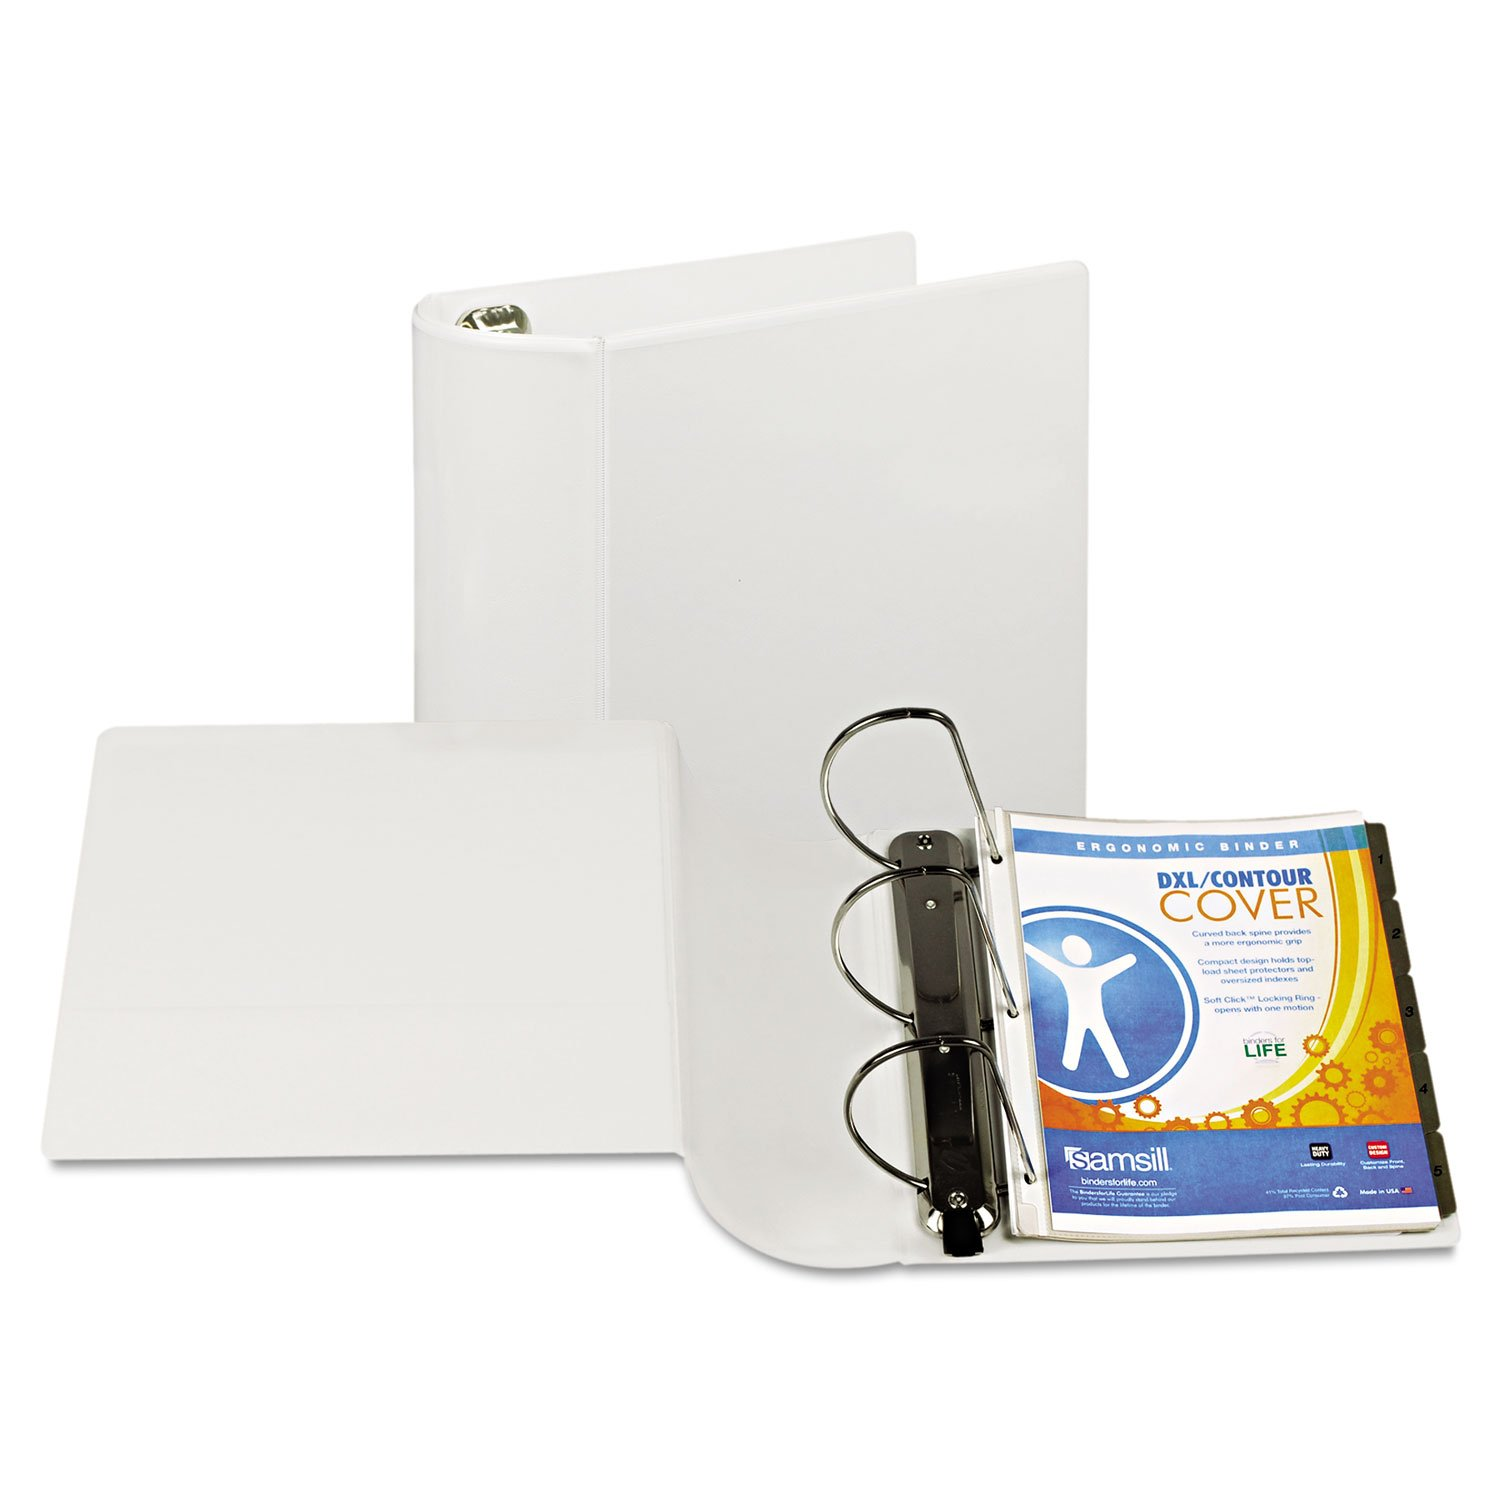 Top Performance Dxl Angle-D View Binder, 5'' Capacity, White By: Samsill